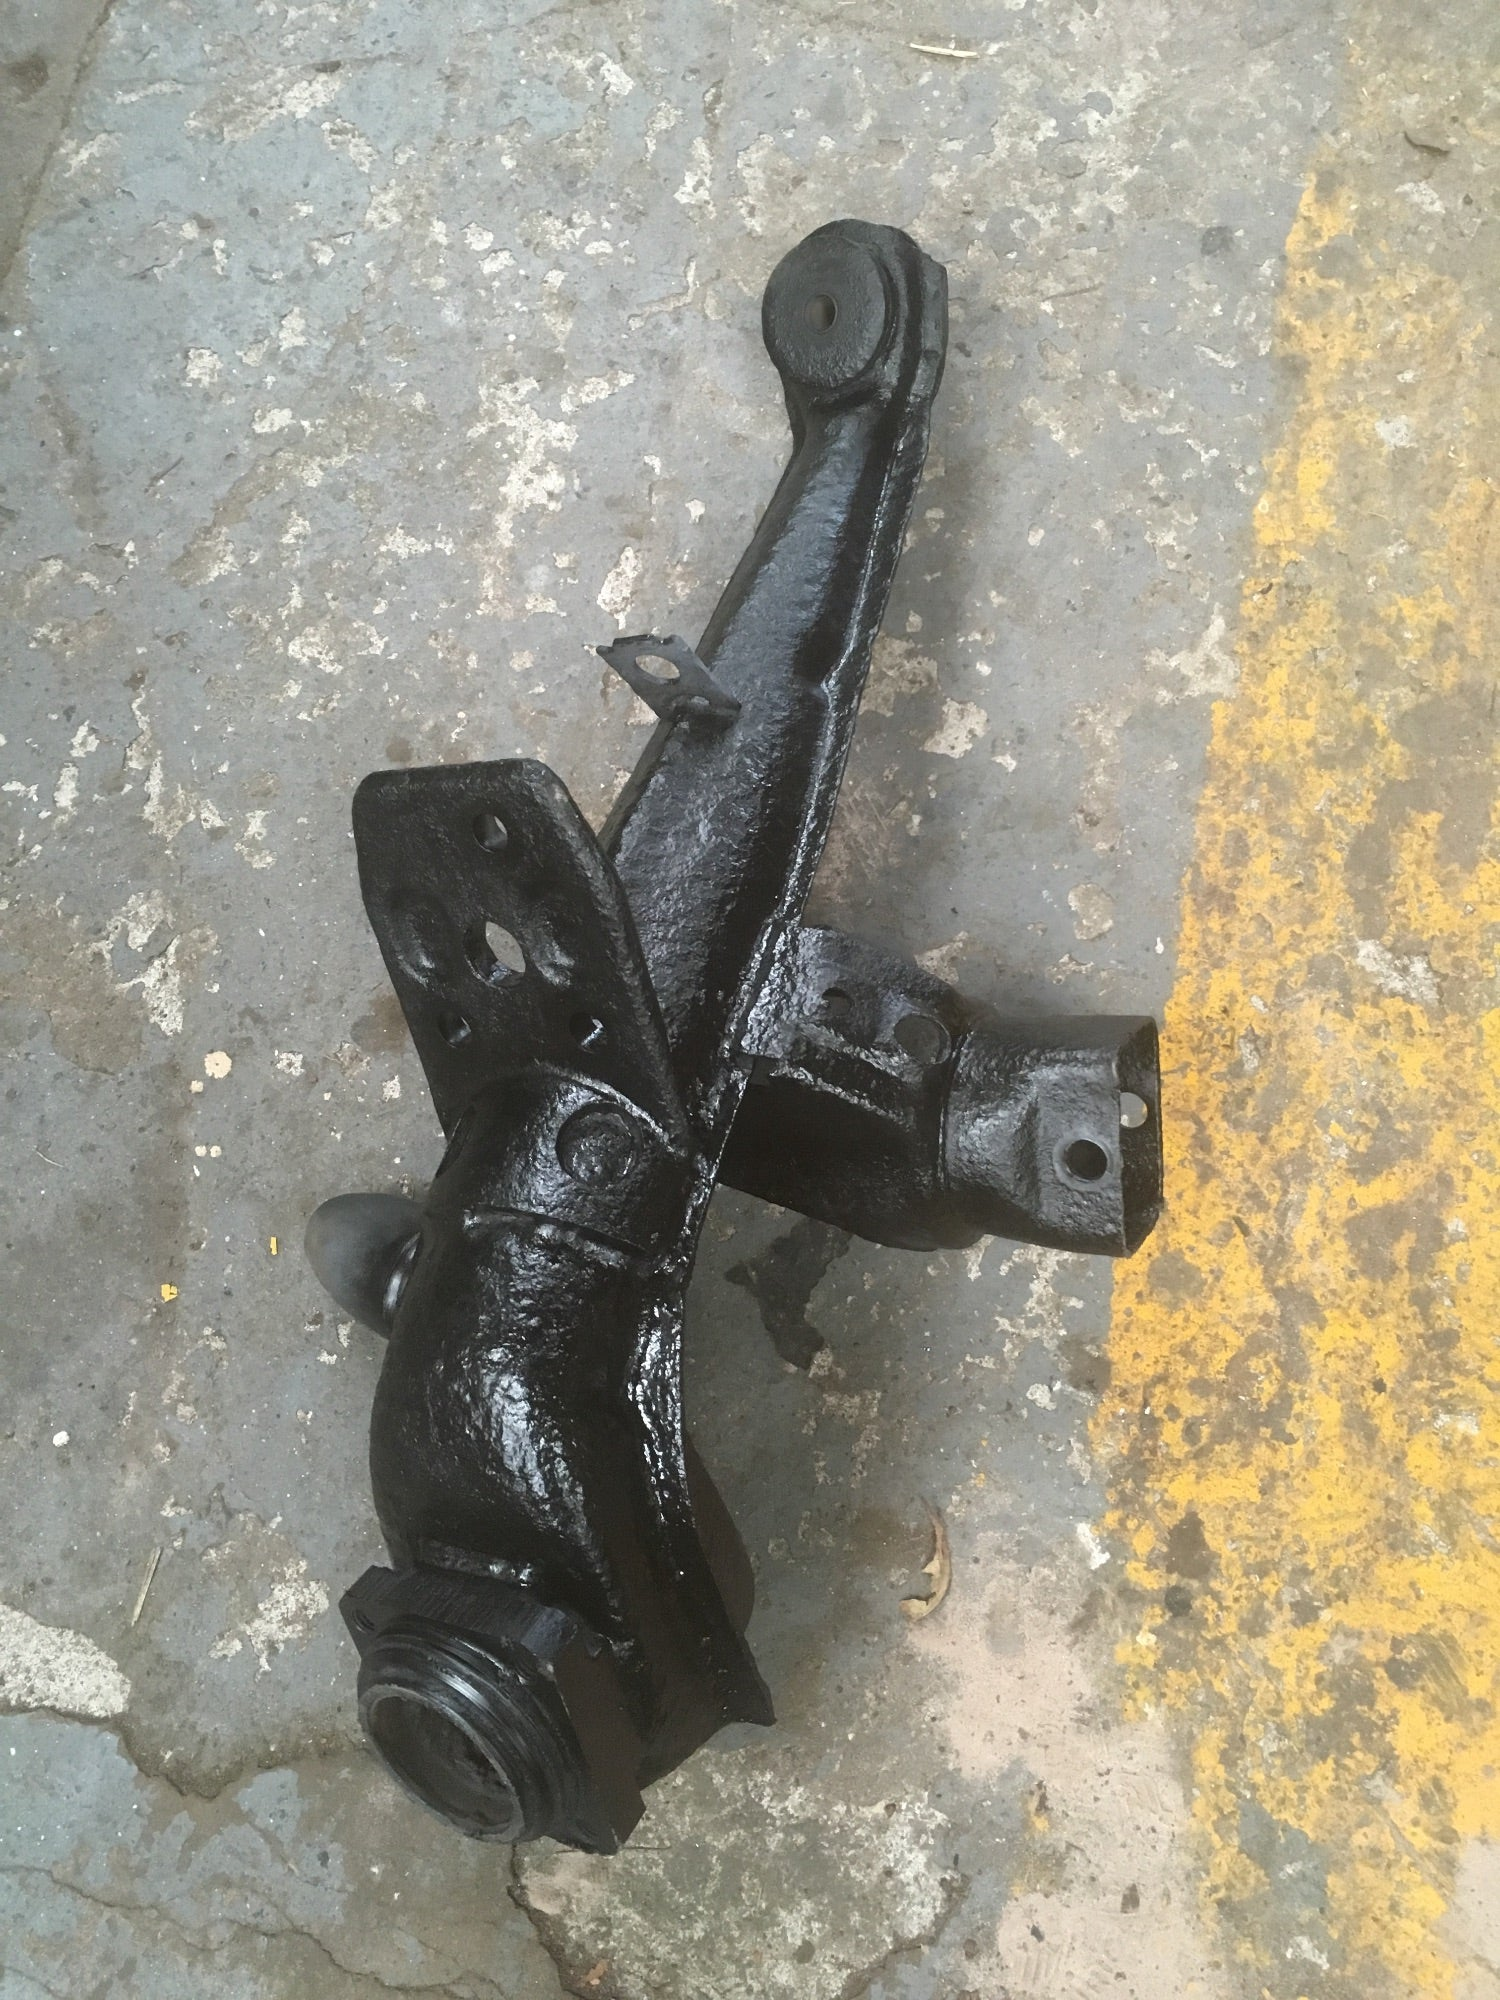 Porsche 924 rear trailing arm 477 501 036D Off side / right (stripped to order) - Woolies Workshop - Porsche 924 944 spares